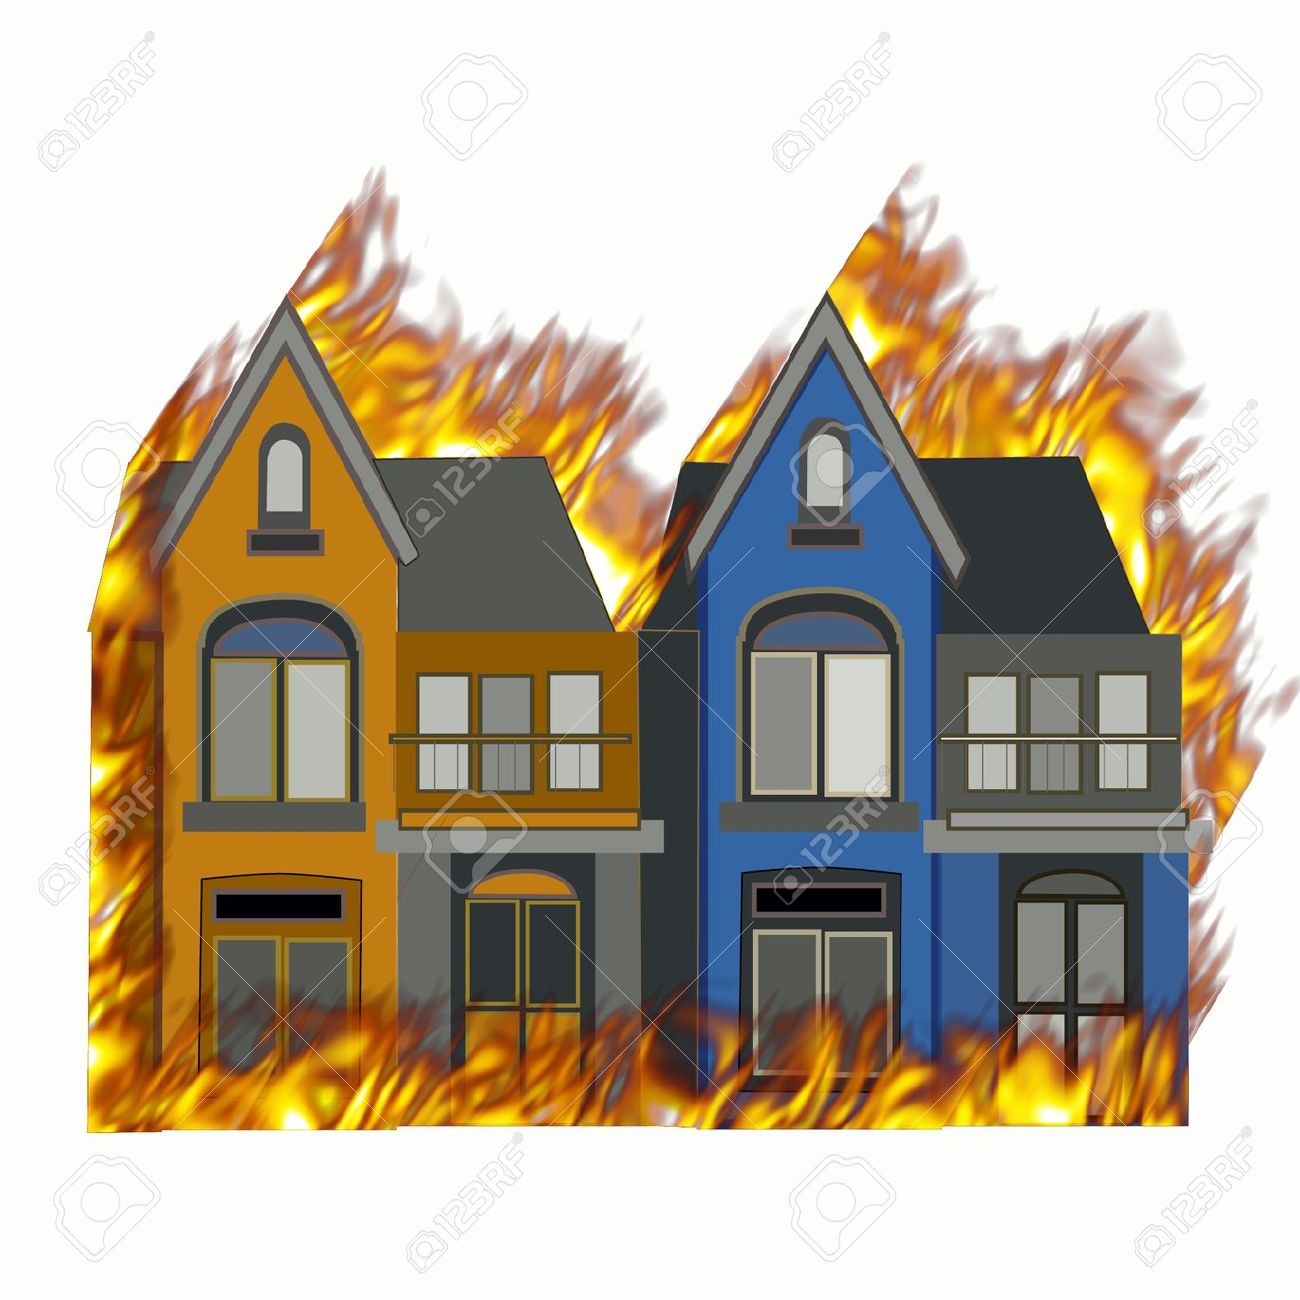 Burning House On Fire With Flames On All Sides Stock Photo.